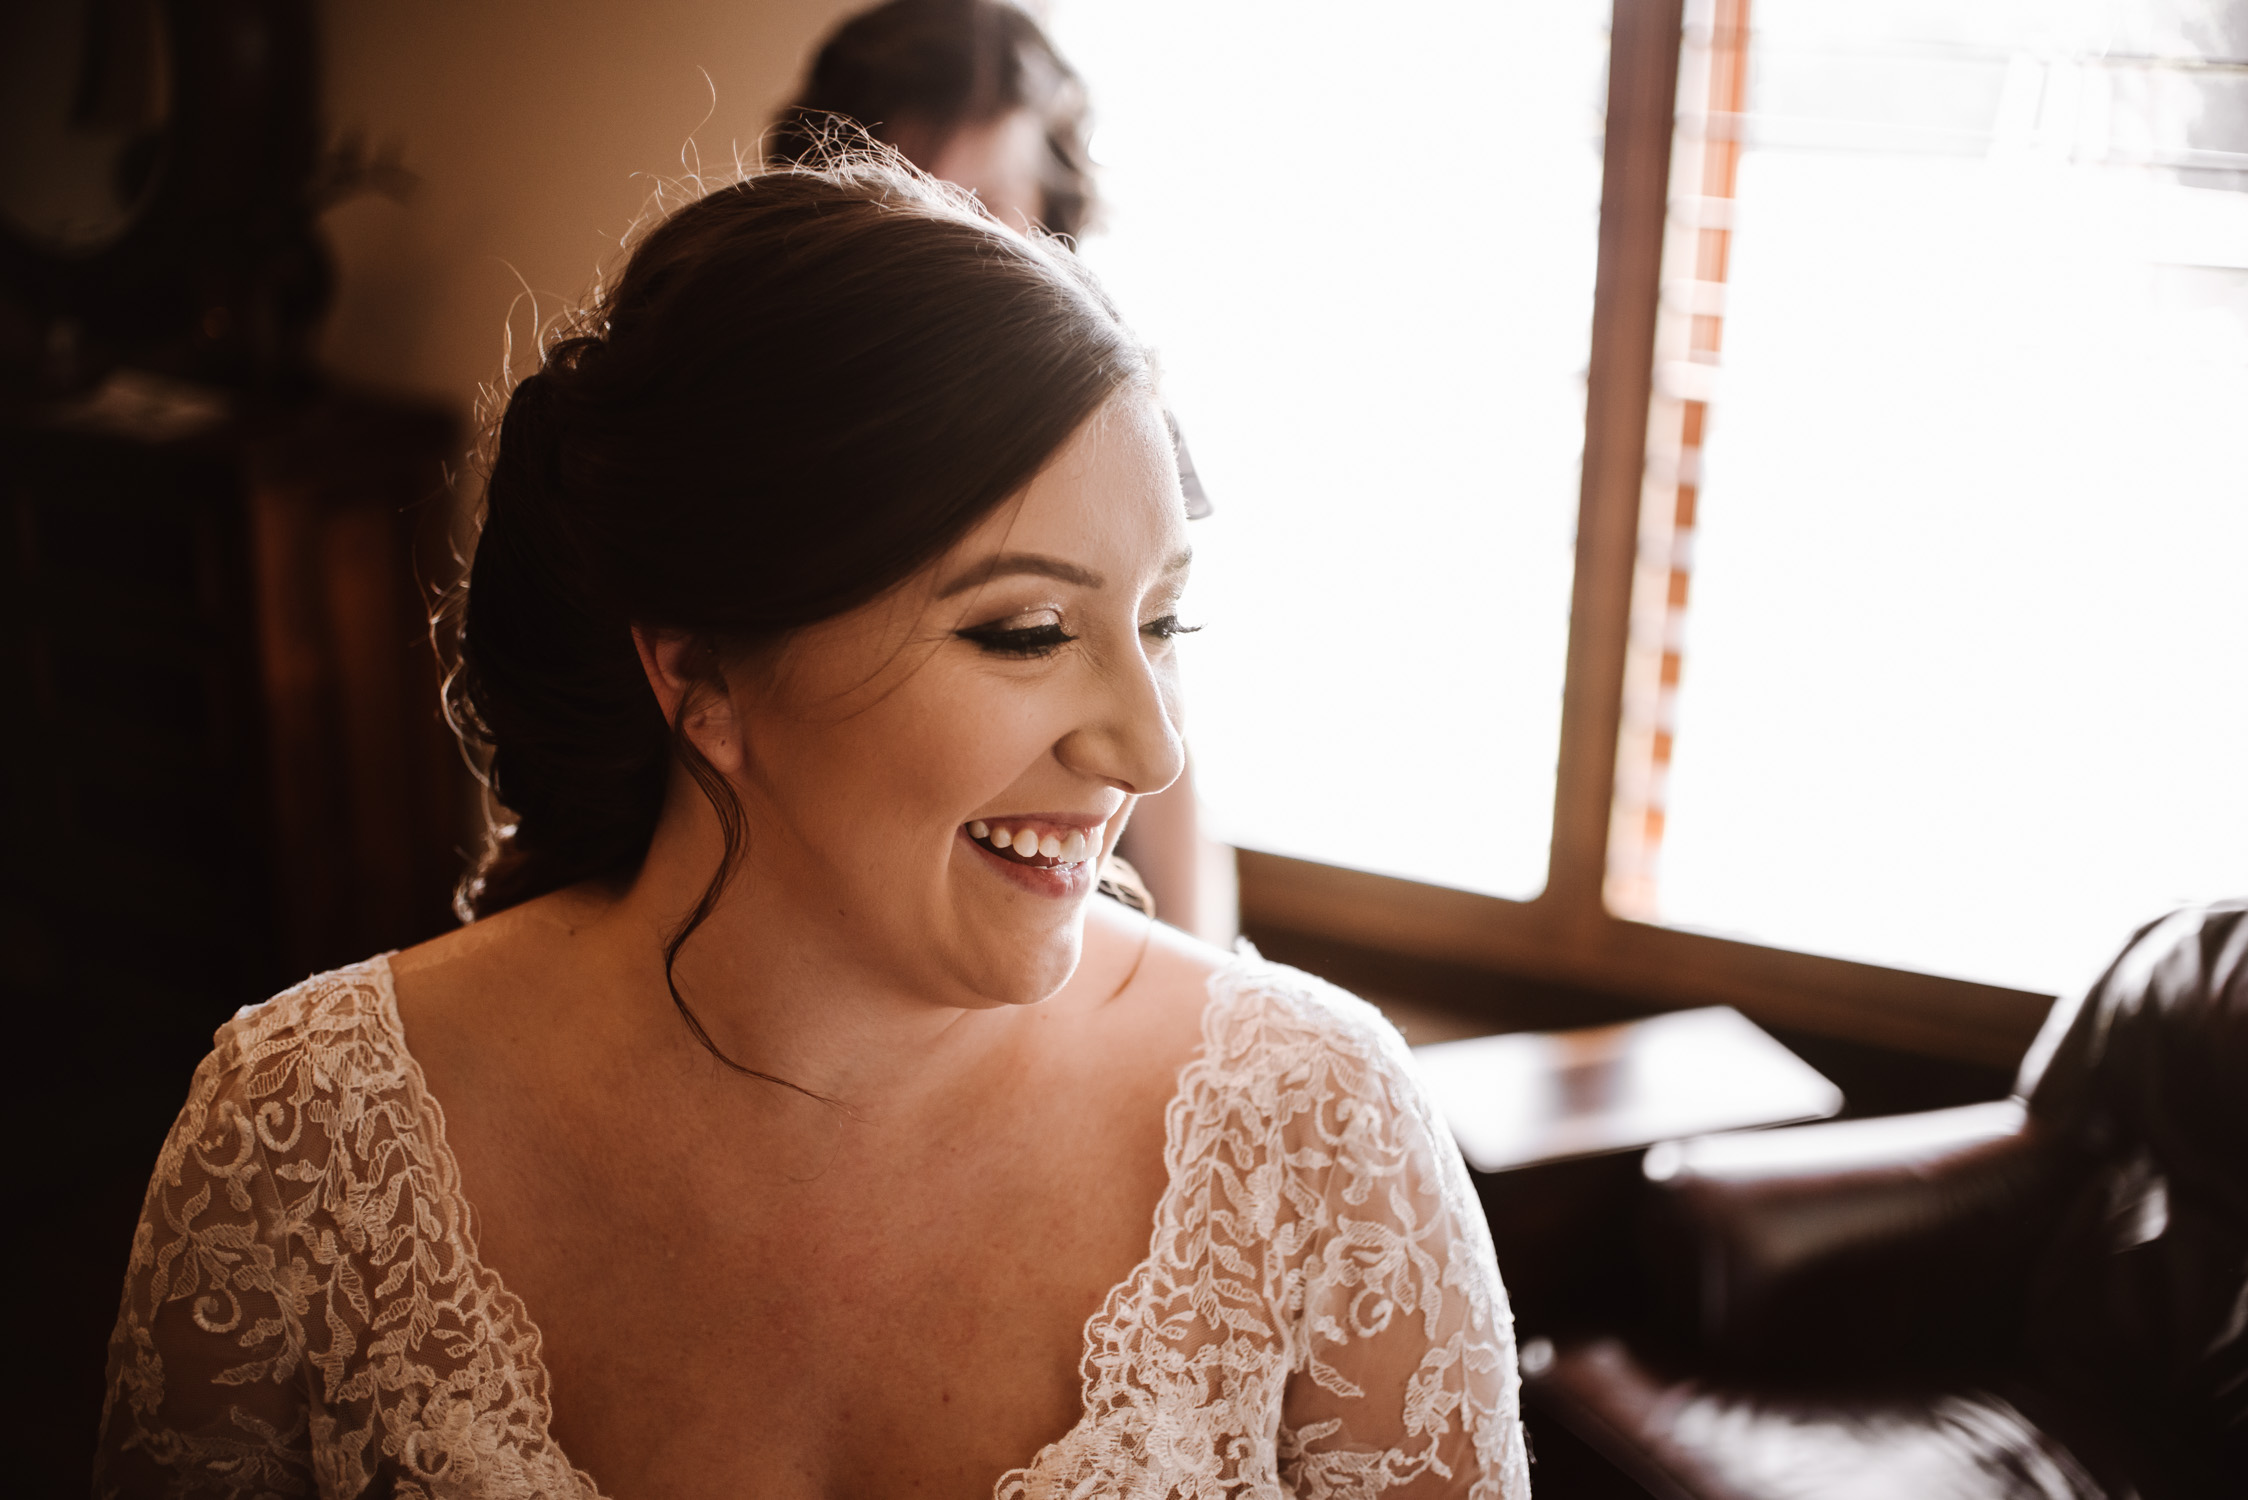 Classy, Southern, Country Wedding | wedding details and getting ready at Atkinson Farms in Danville, Virginia | Greensboro Winston-Salem, NC Wedding Photographer